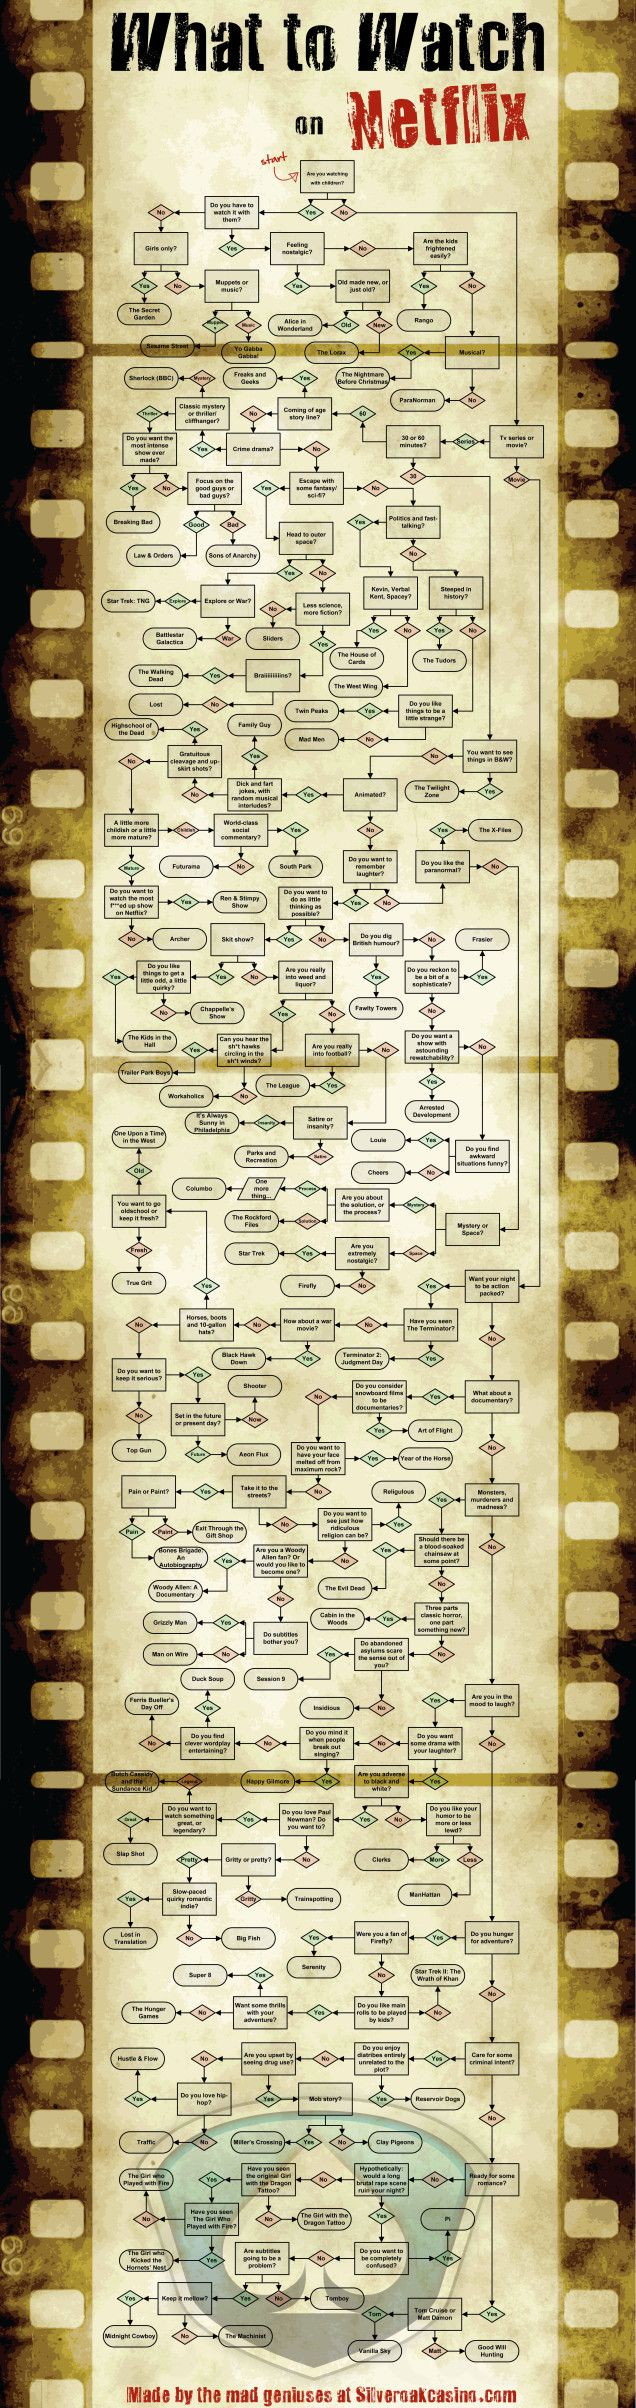 This Genius Netflix Flowchart Will Tell You Exactly What to Watch - sadly it only works with American Netflix